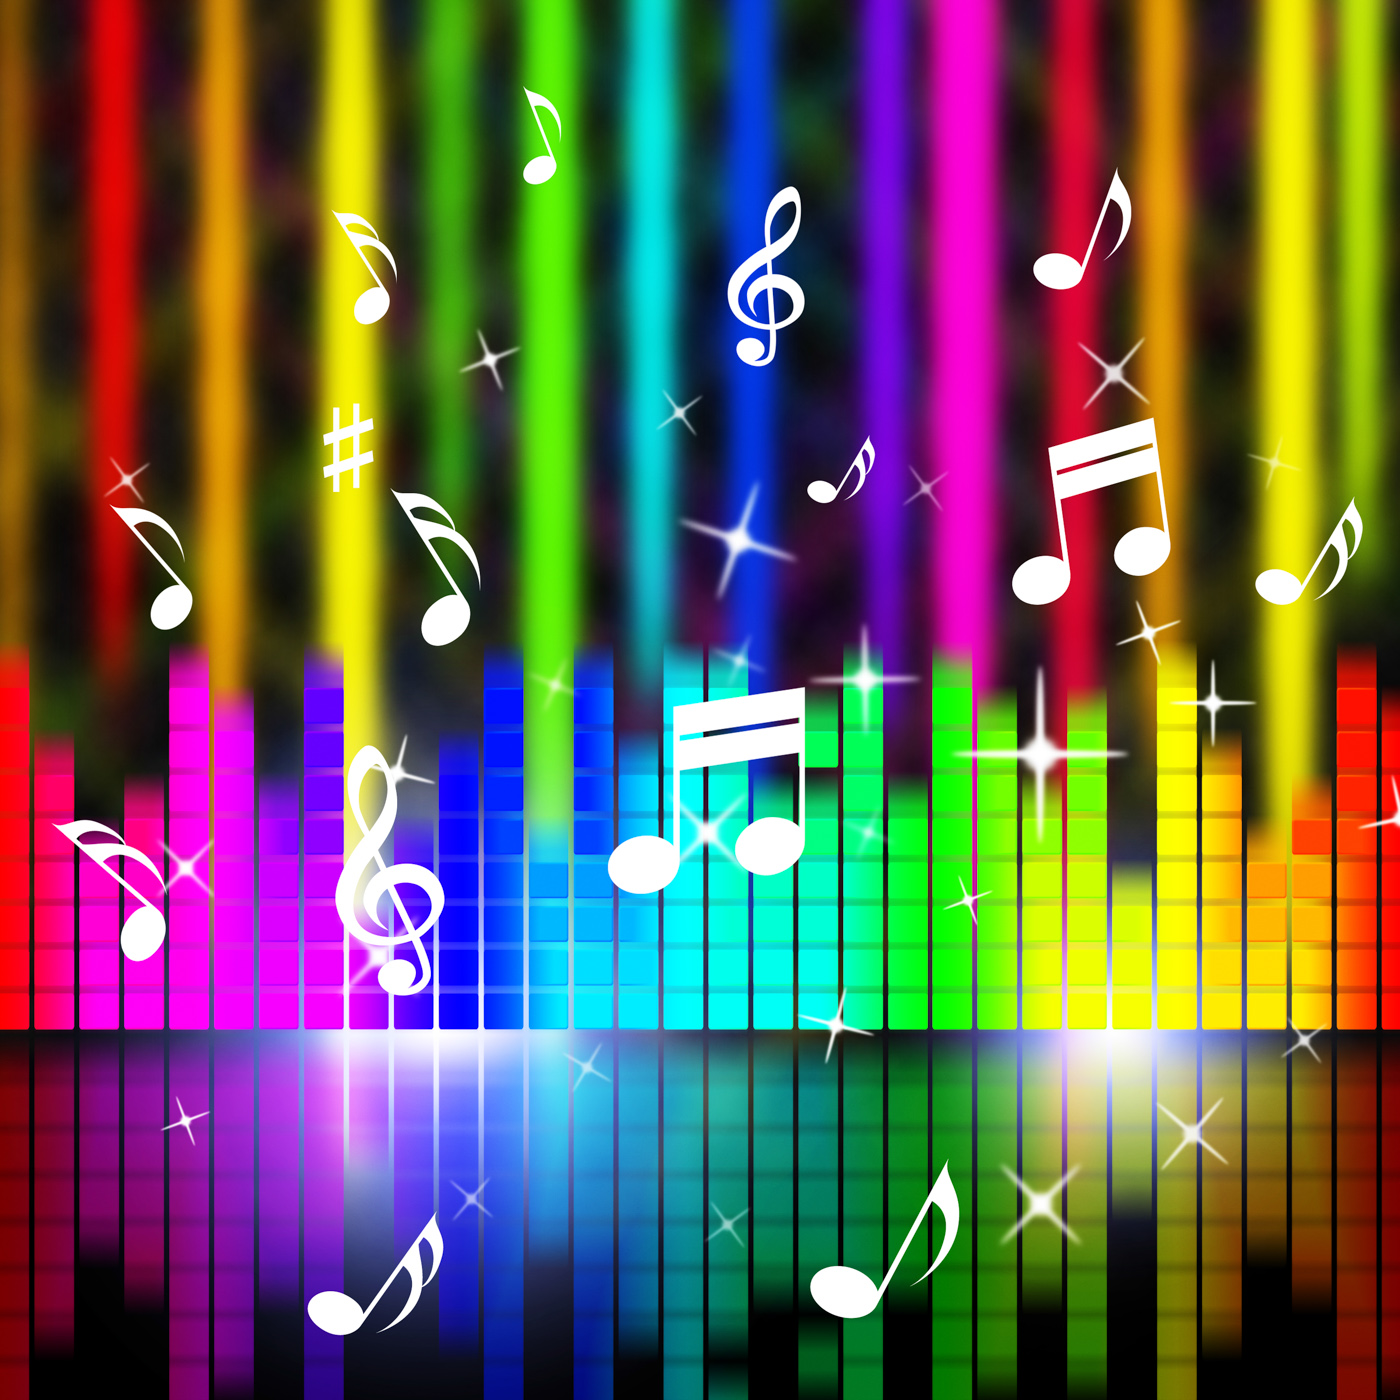 Free photo: Music Background Means Playing Songs And Sounds - Randb